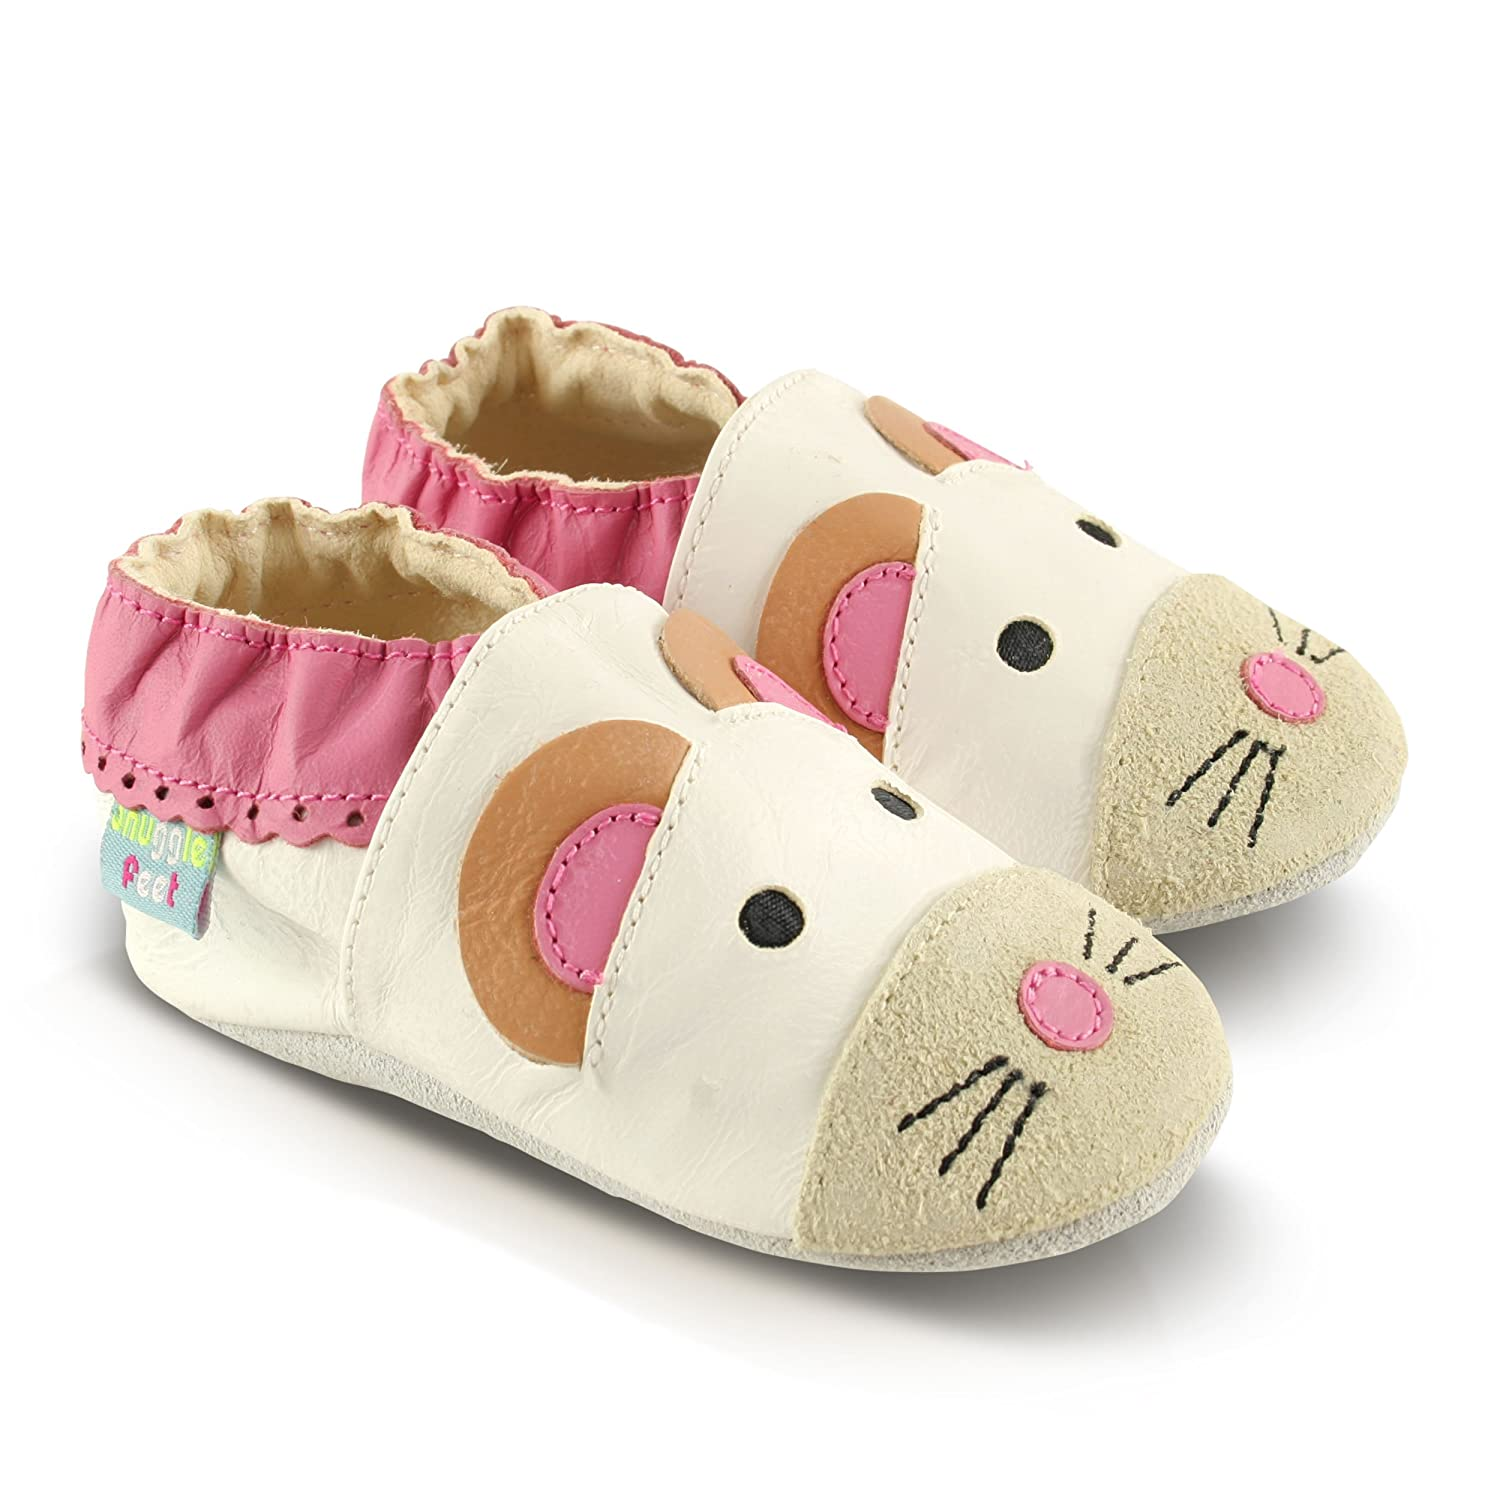 Snuggle Feet Soft Leather Baby Shoes 6-12 months, Bunny 6-12 months Toddler Shoes 2-3 years 18-24 months 0-6 months 12-18 months